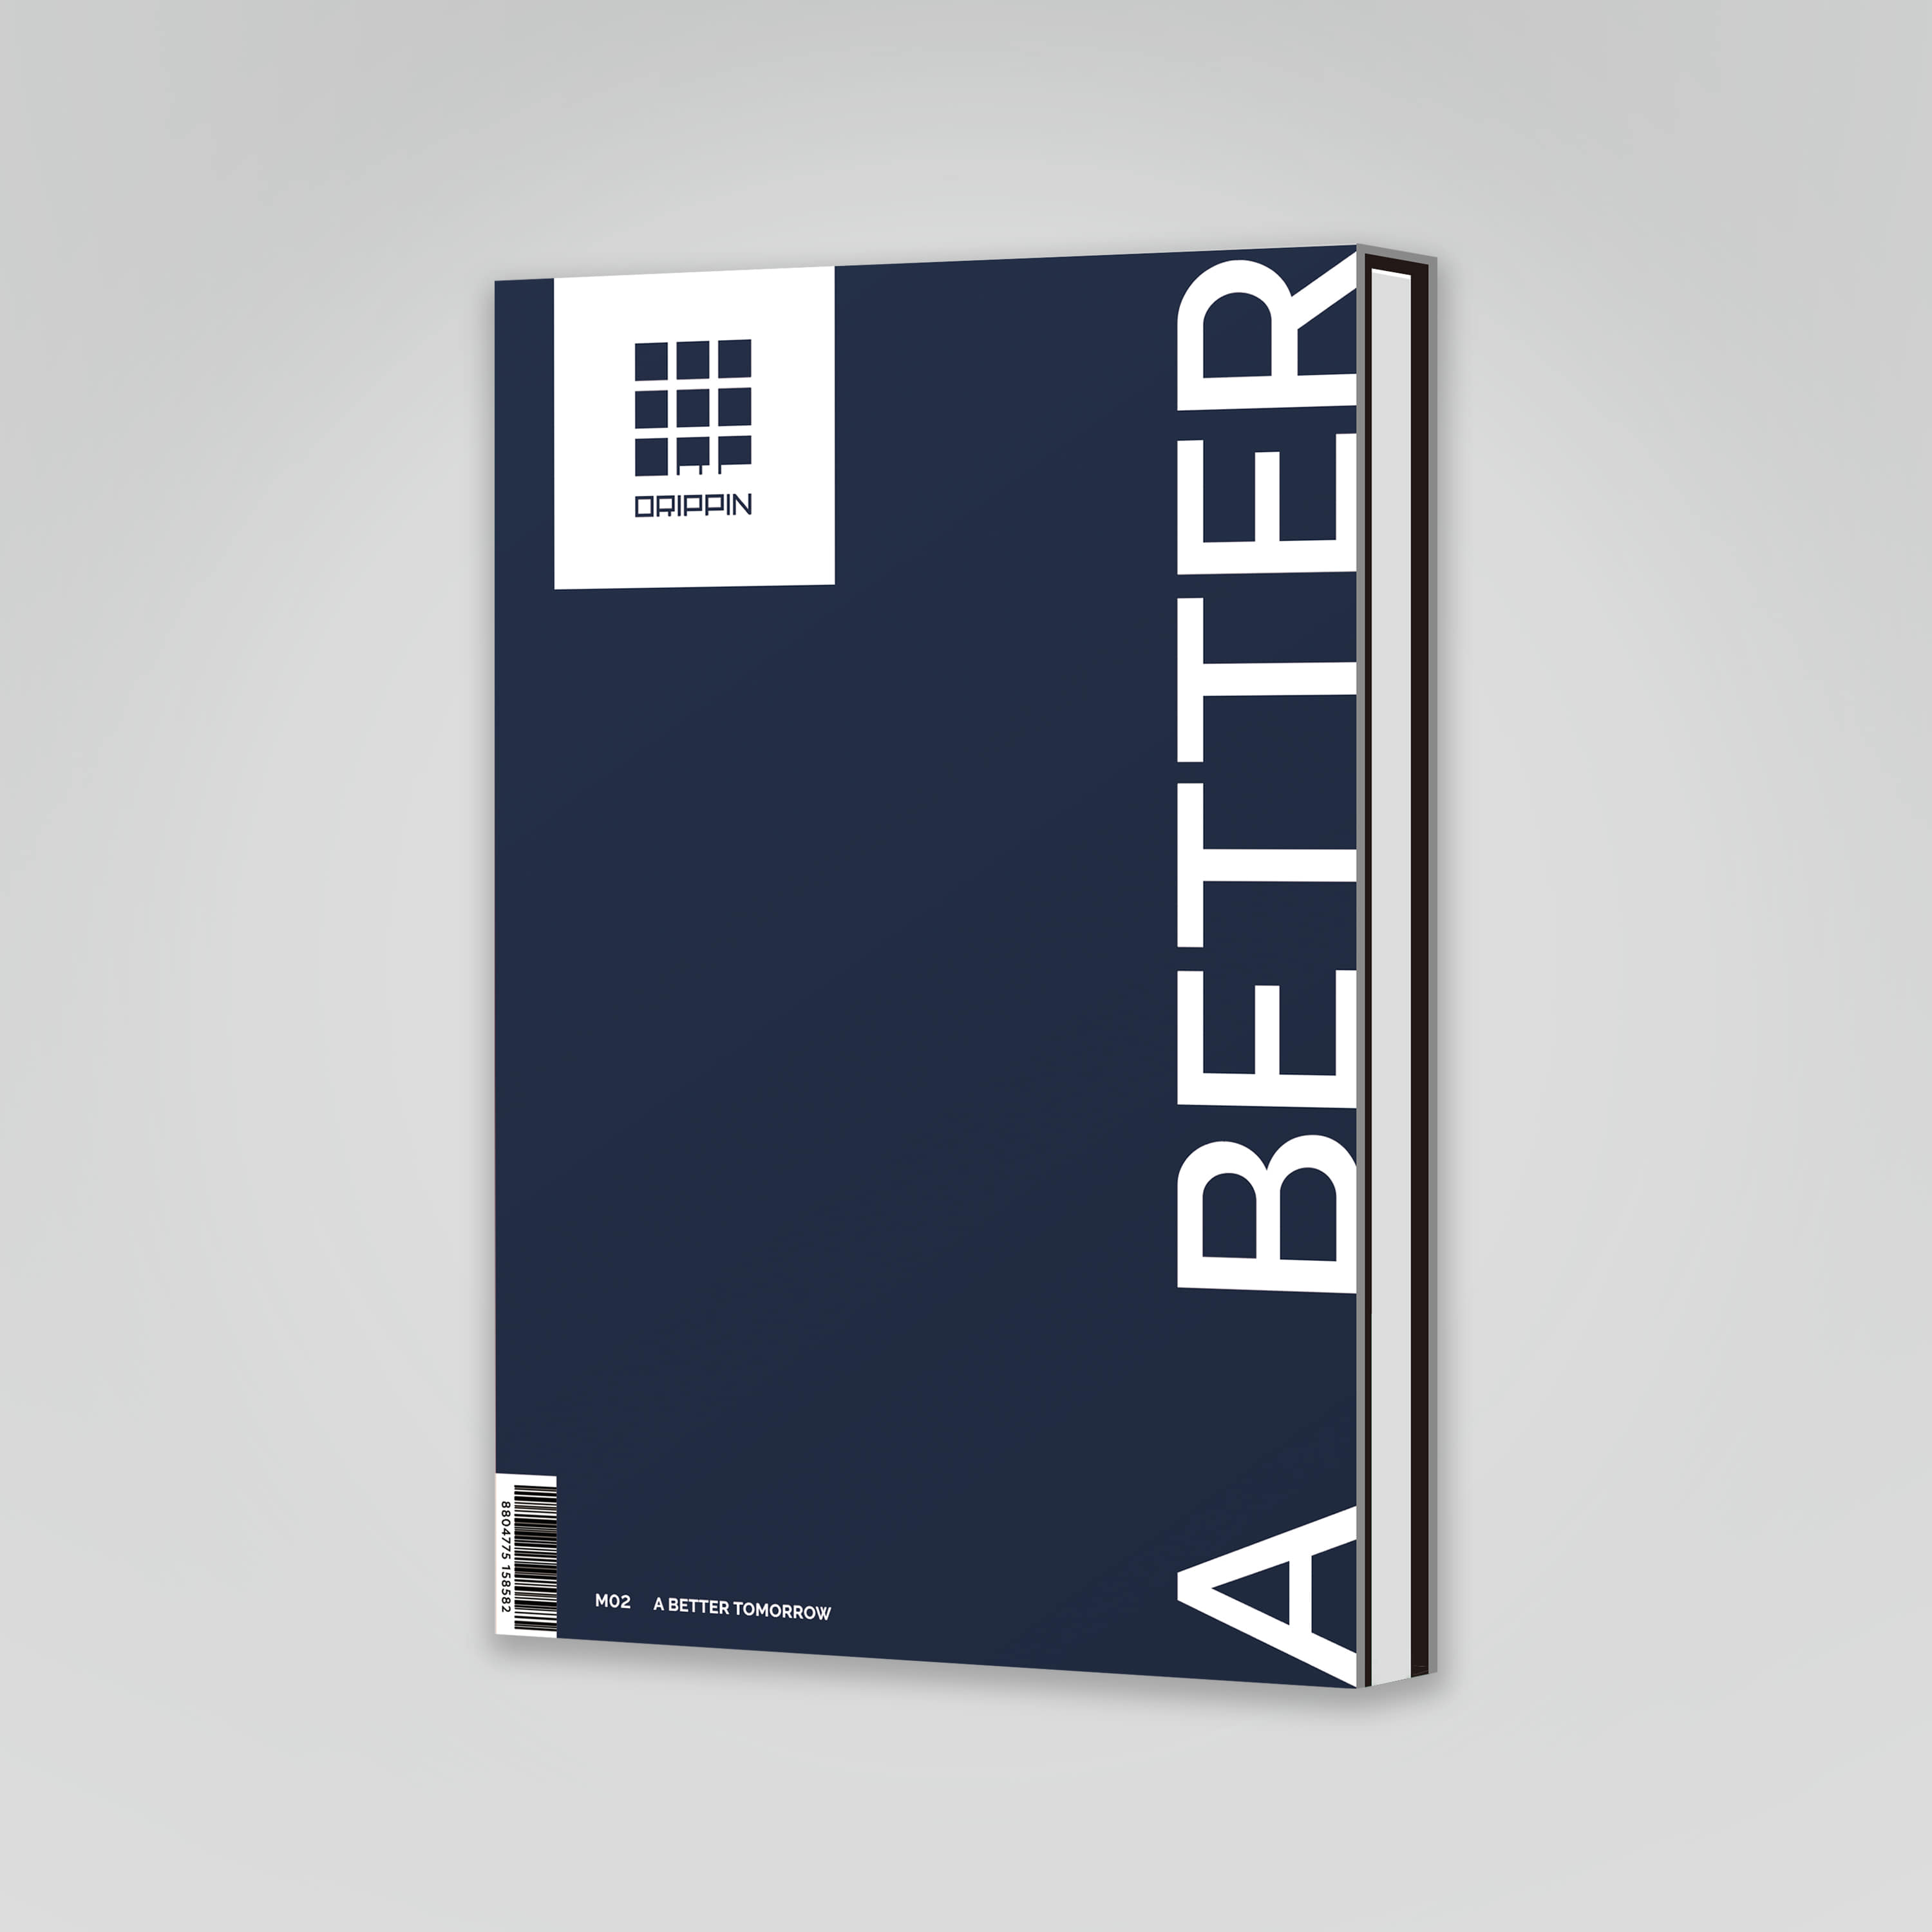 [PRE-ORDER] DRIPPIN - Mini Album Vol.2 [A Better Tomorrow] (A Ver.)케이팝스토어(kpop store)